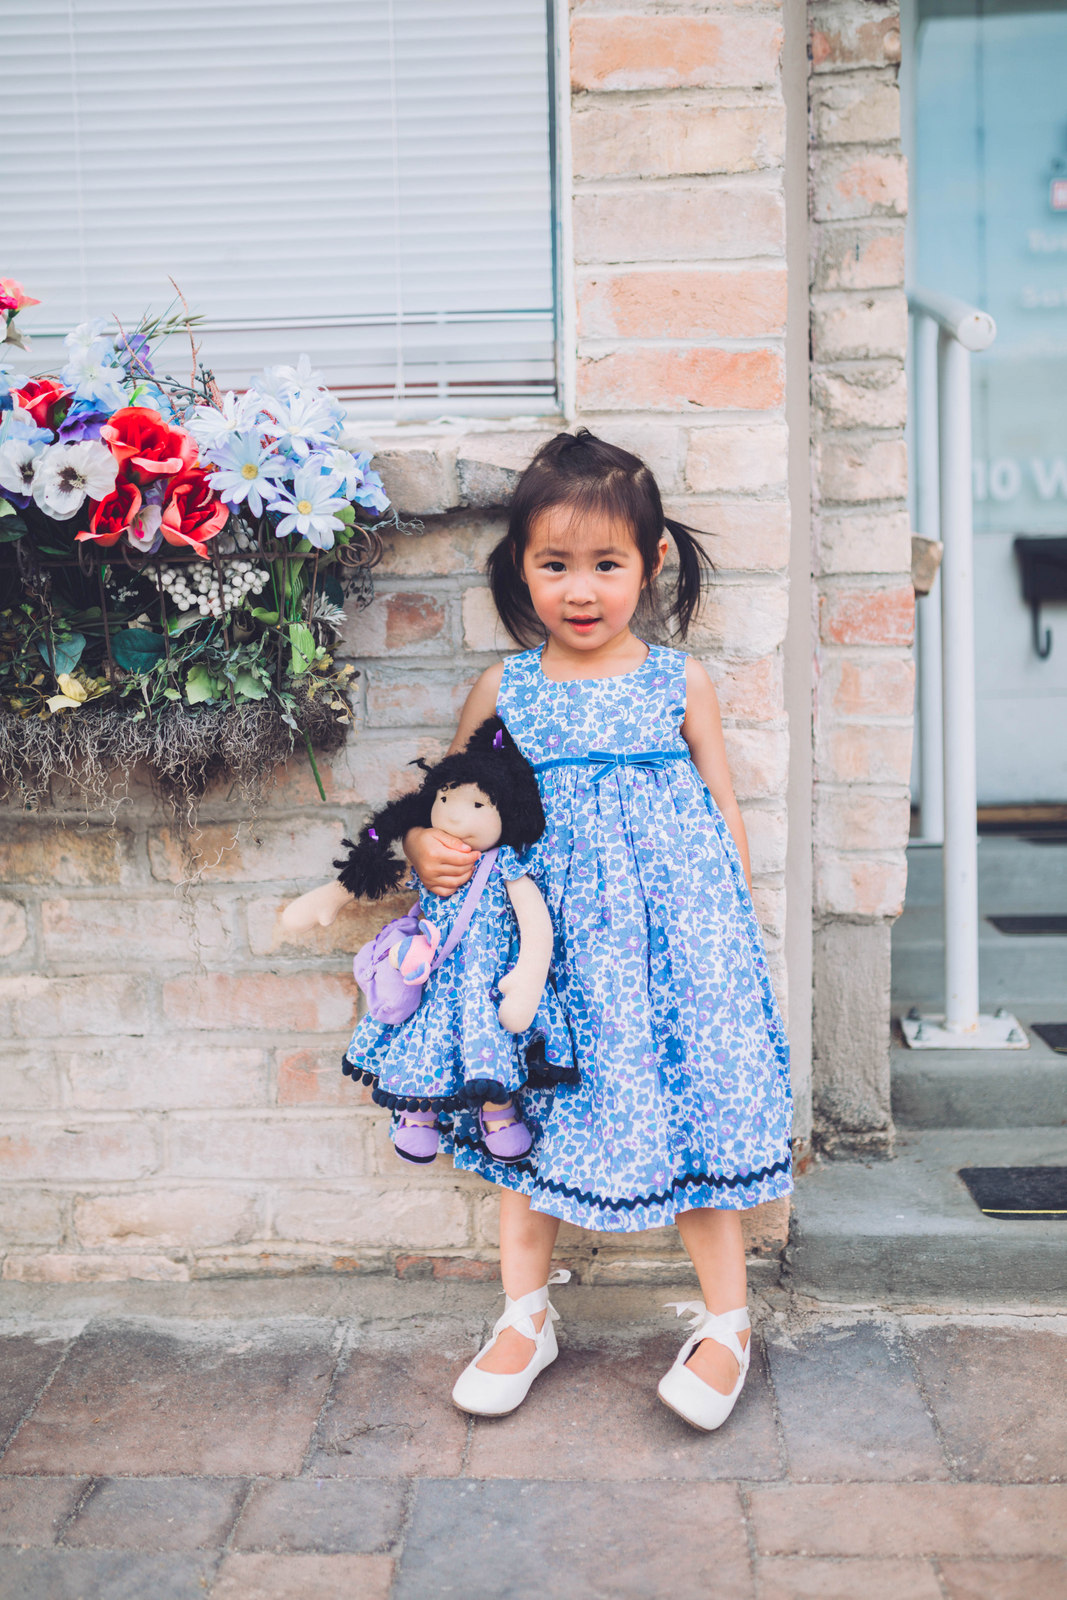 We can all imagine how much fun it would be to have an outfit for yourself and a matching one for your favourite doll or bear! At Frilly Lily we have developed a range of outfits for girls that have matching miniature outfits available for their special friend, this way there is always someone to play with!